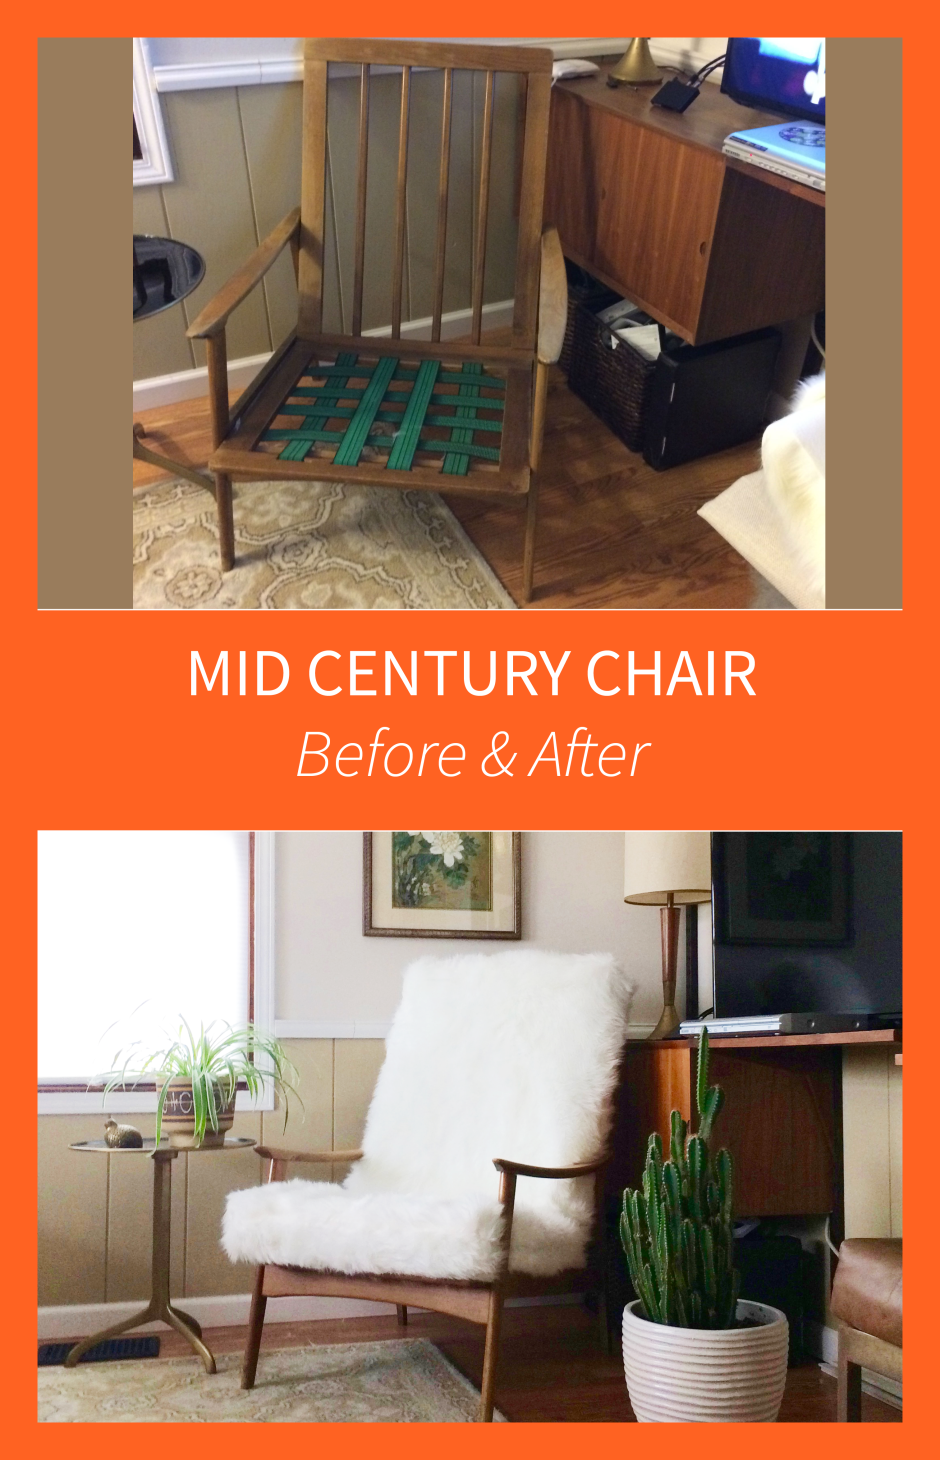 Mid Century Chair Before & After Furry Furniture